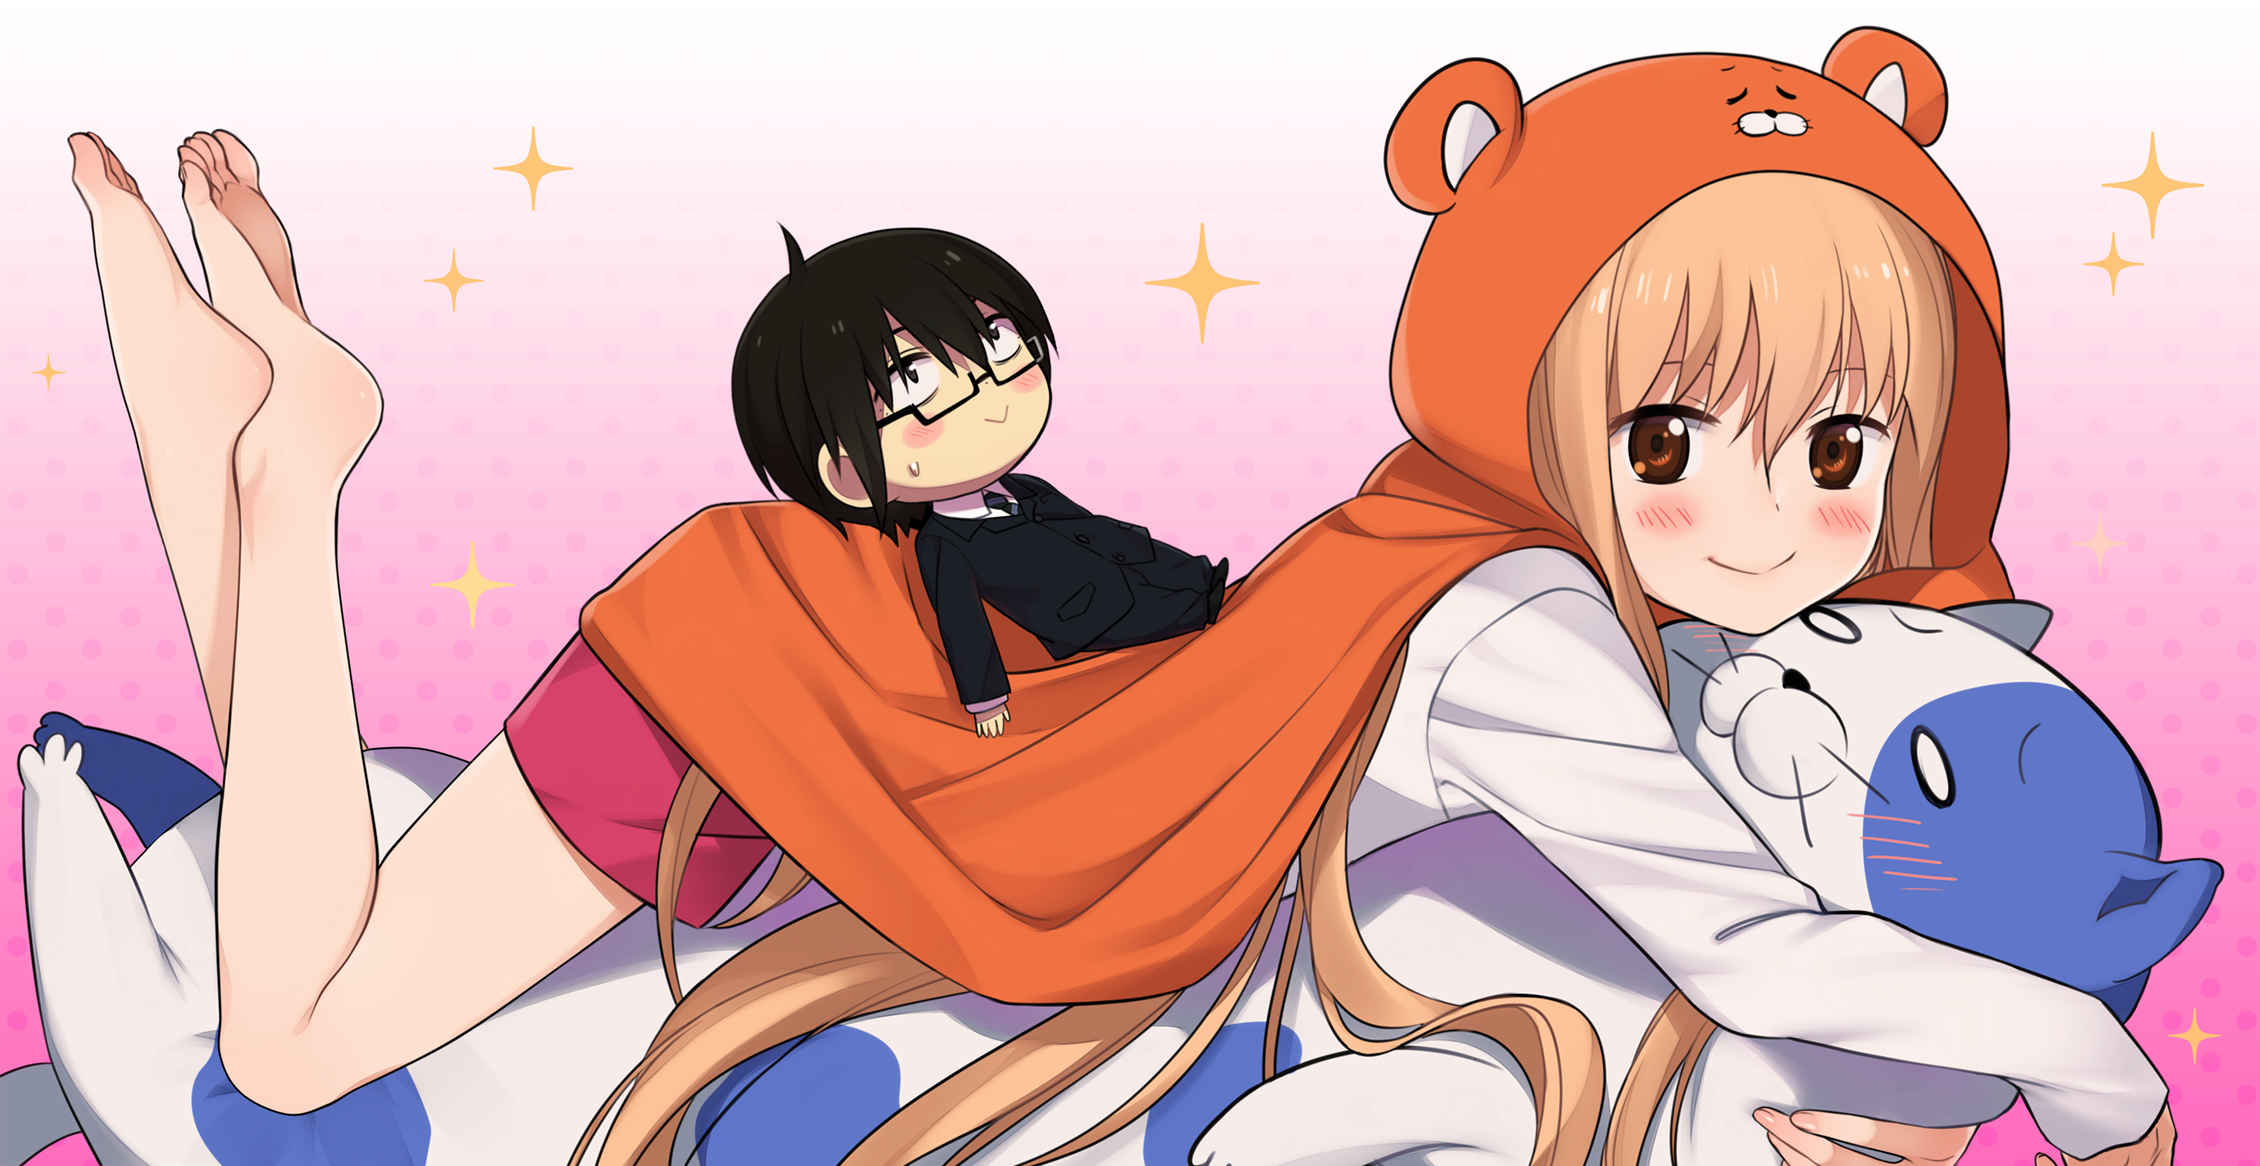 Anime Wallpapers Himouto Umaru-chan HD 4K Download For Mobile iPhone & PC